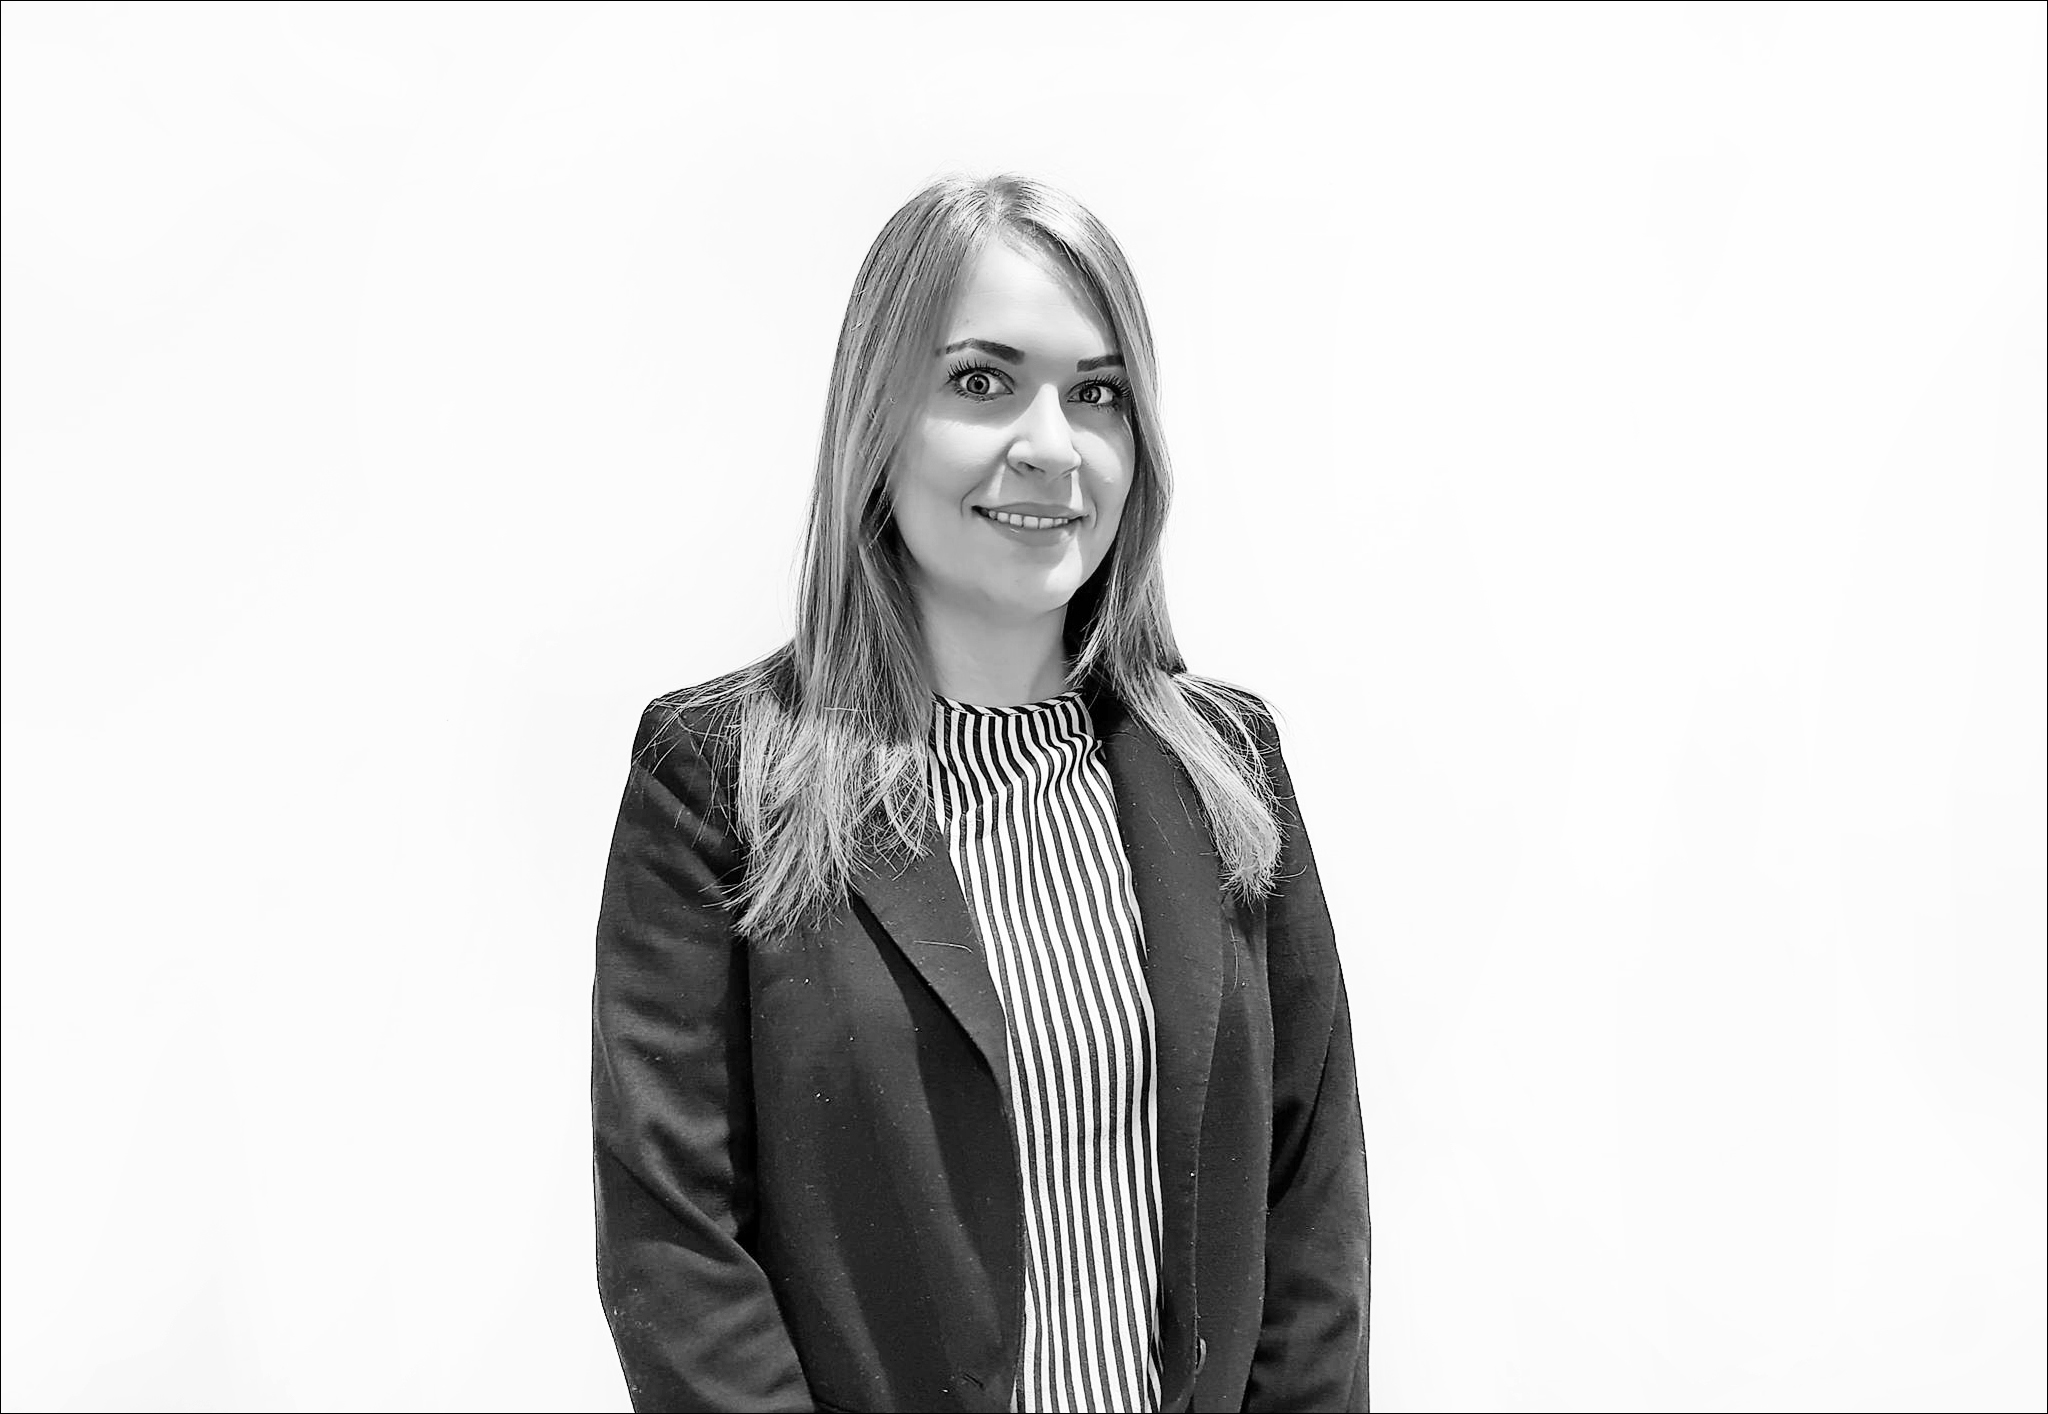 Sarah joined us as a resource consultant in our IT division and worked her way up. Having studied Law at Sheffield University and worked in the property sector for four years in Canary Wharf she returned to Dorset to pursue a career in recruitment. Outside of work, Sarah enjoys travelling, spending time at the beach and staying active.